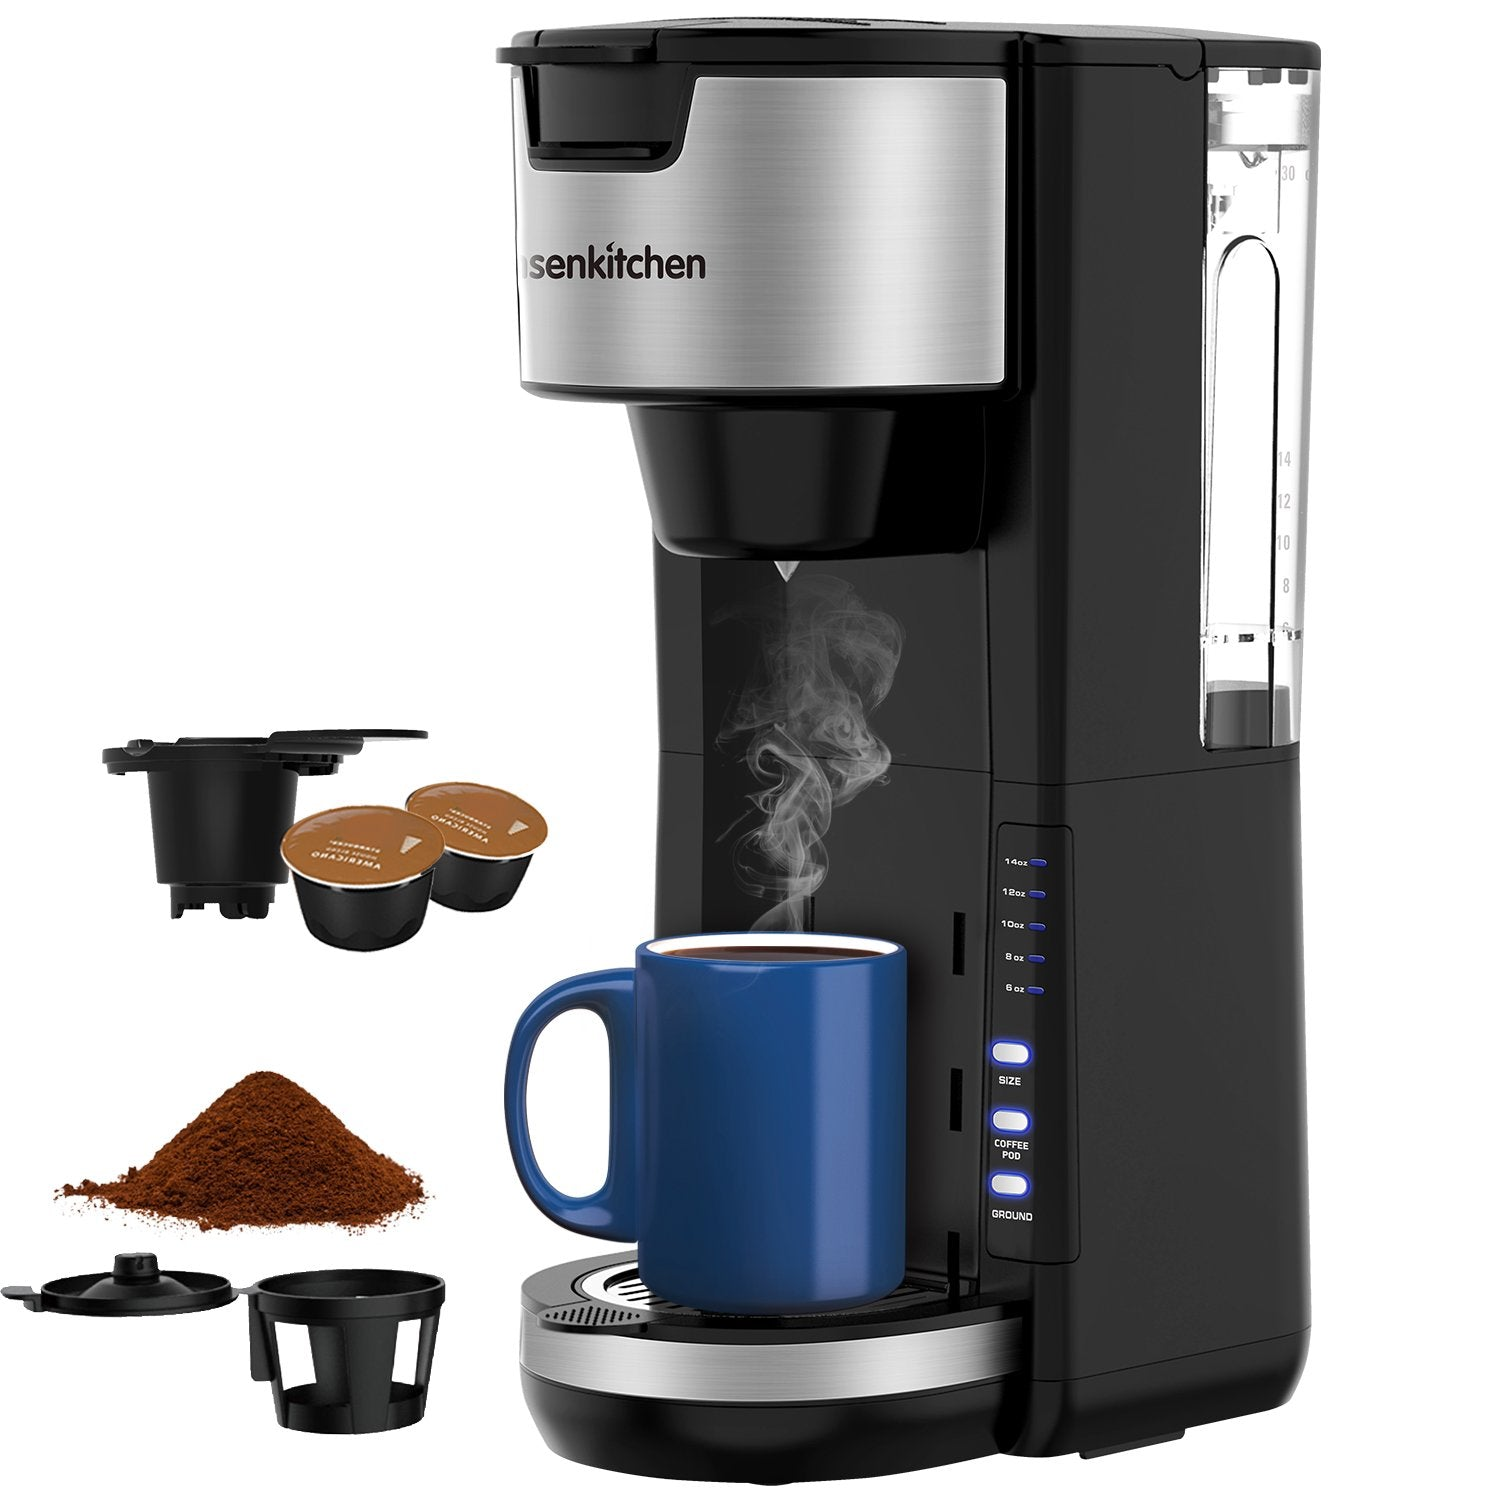 Bonsenkitchen 2 in 1 Compact and Durable K-Cup Coffee Maker